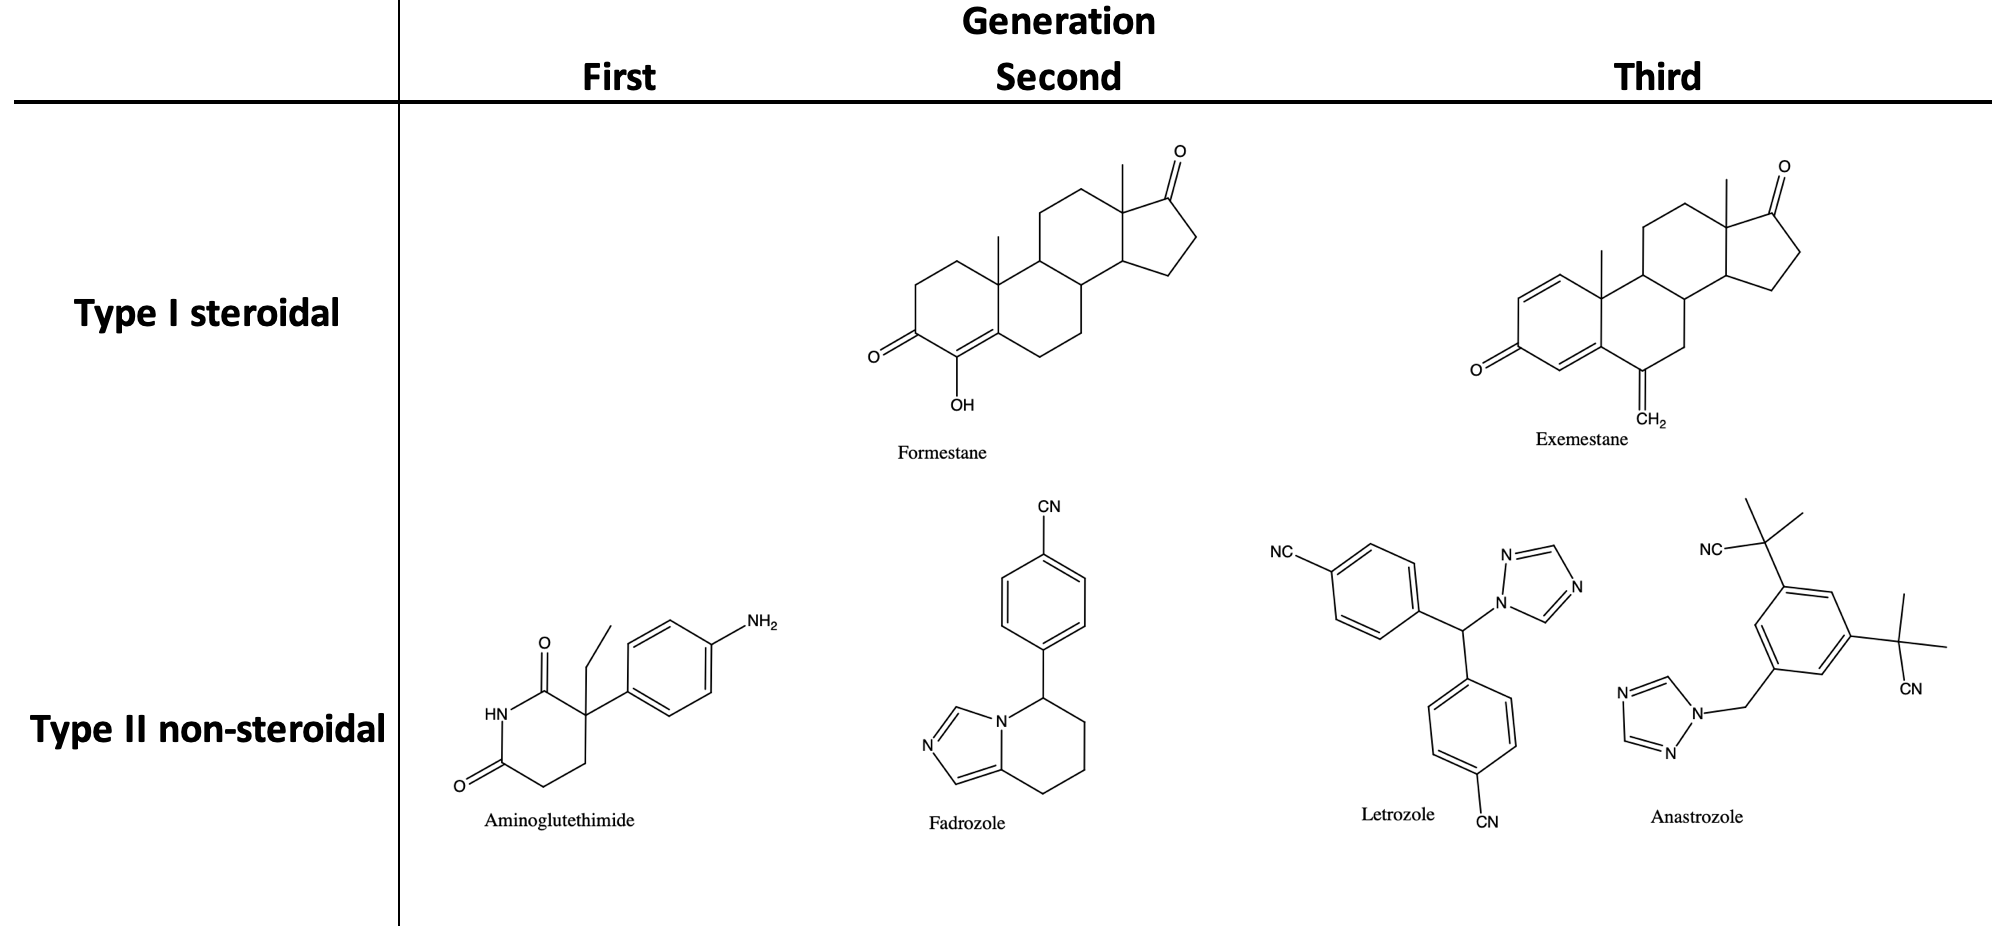 Aromatase inhibitors for steroids steroids and image enhancing drugs